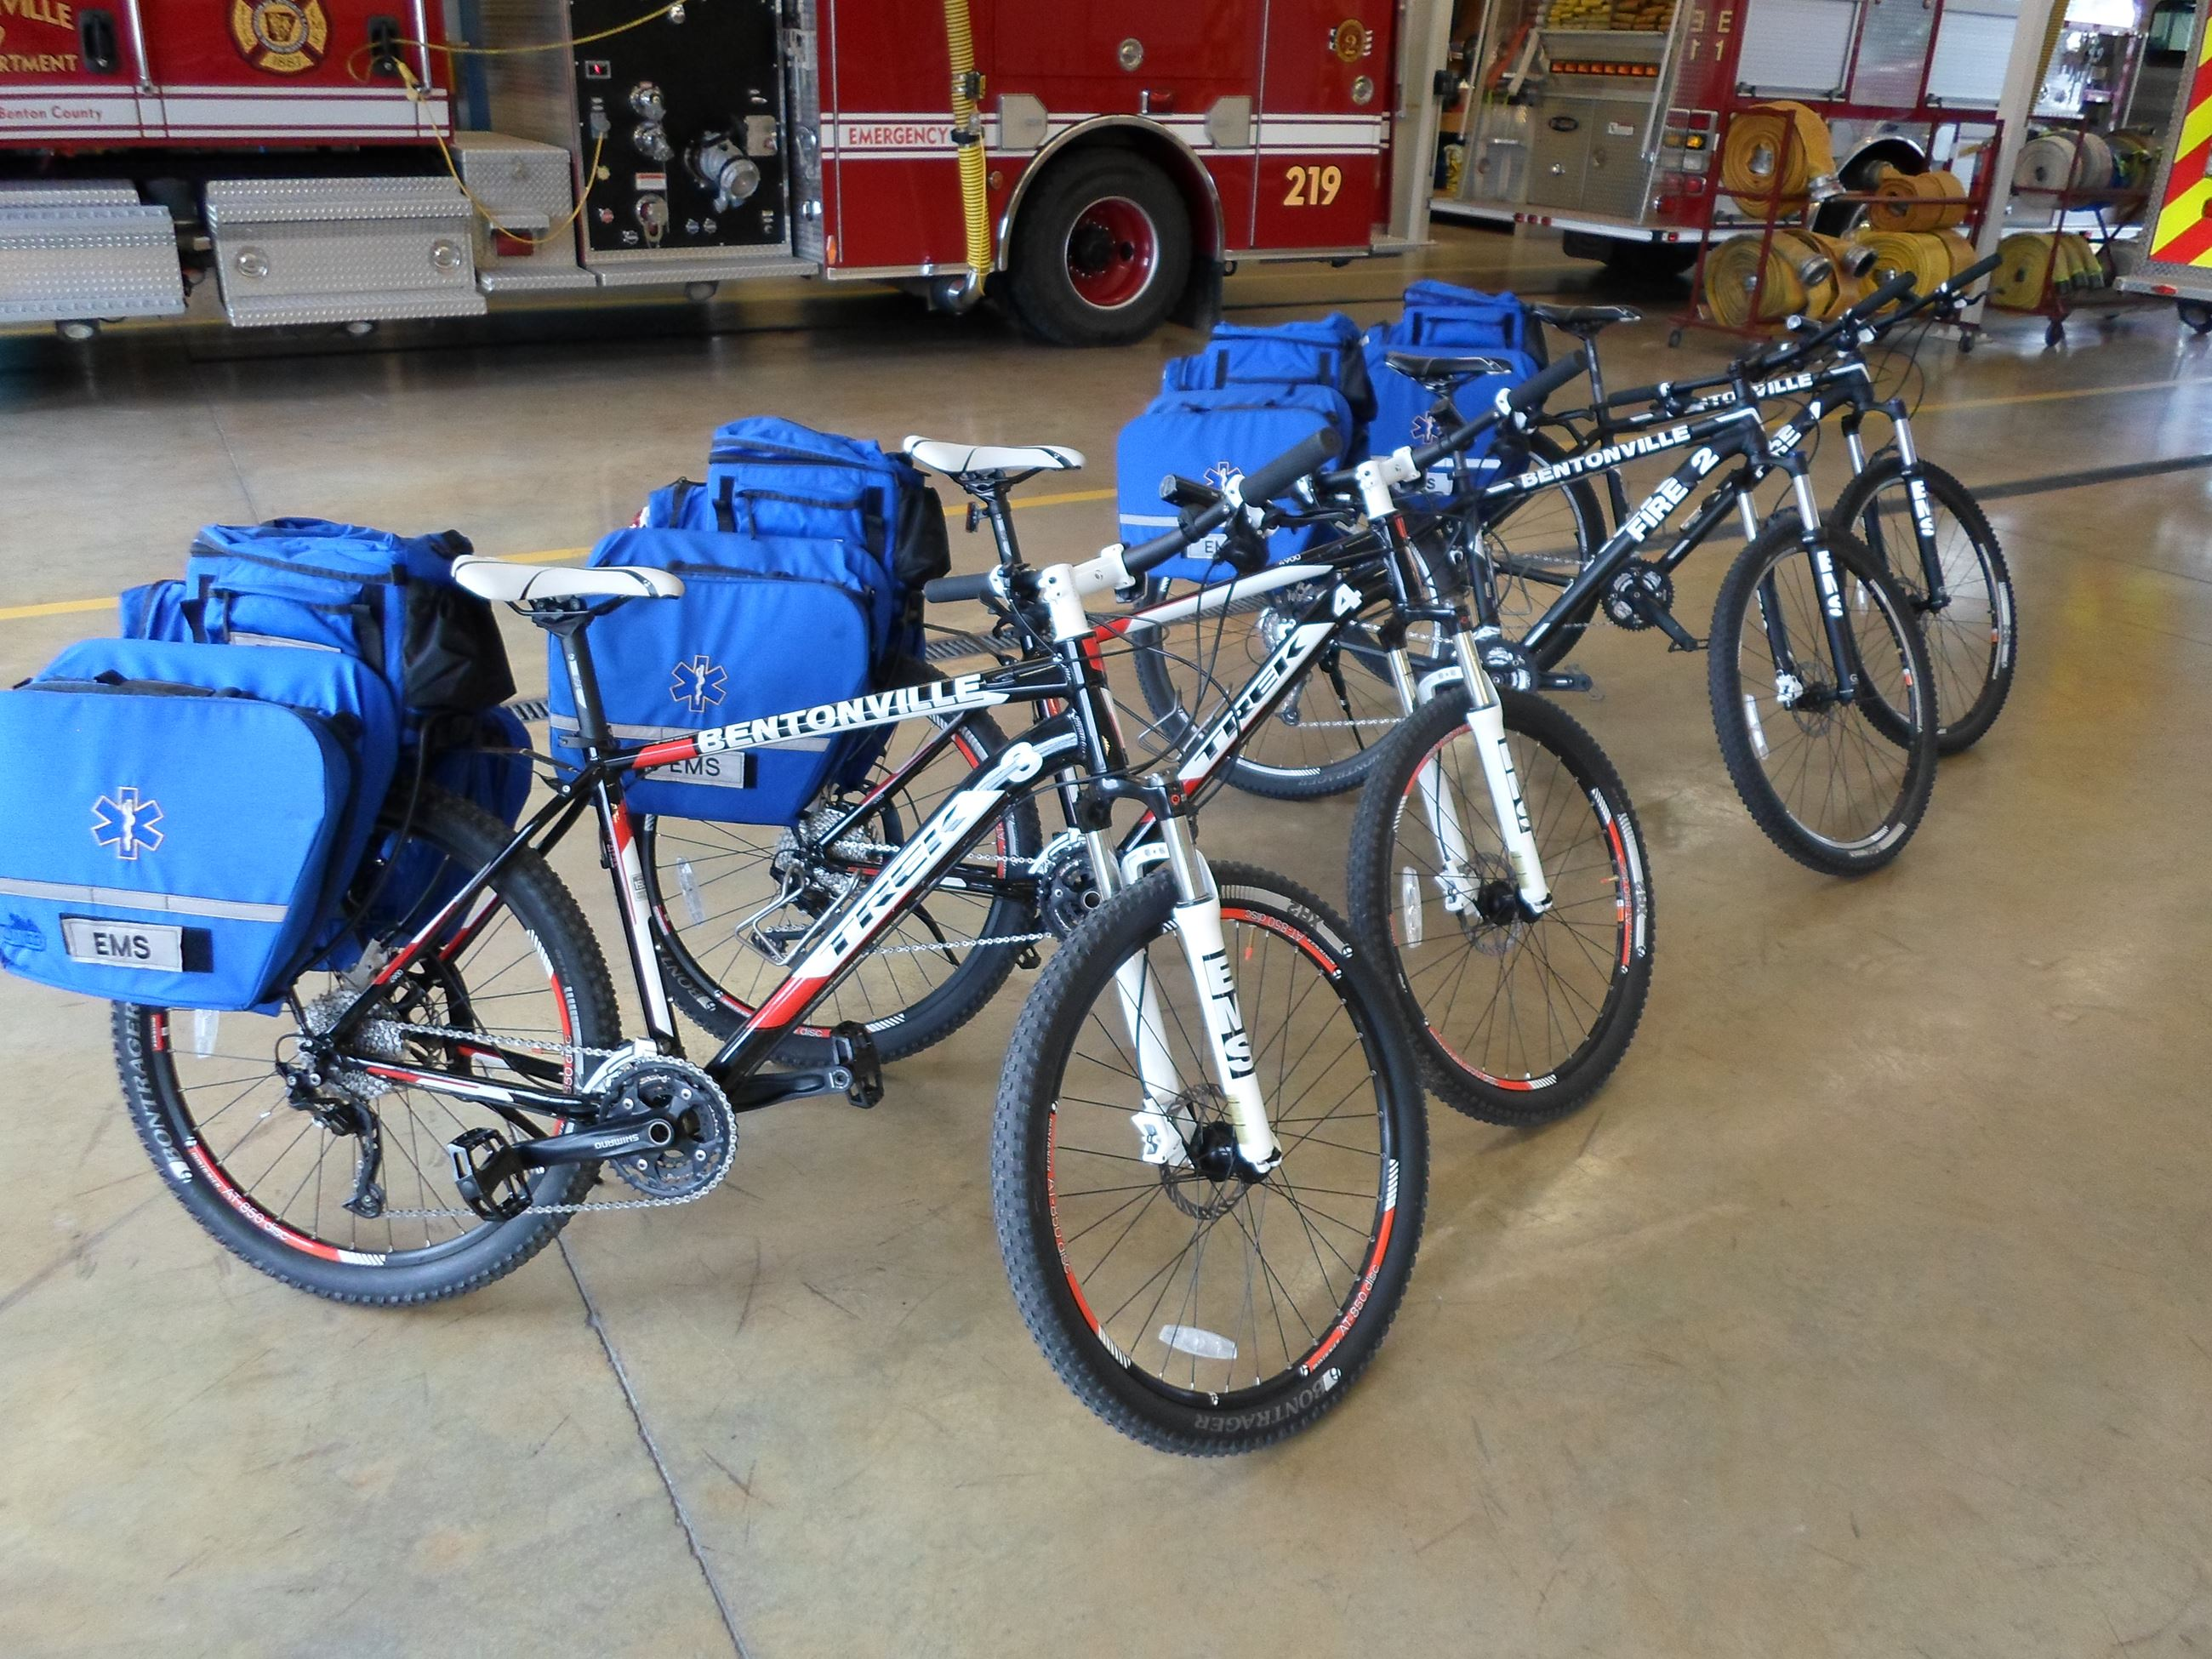 5 EMS Bikes in a row inside station